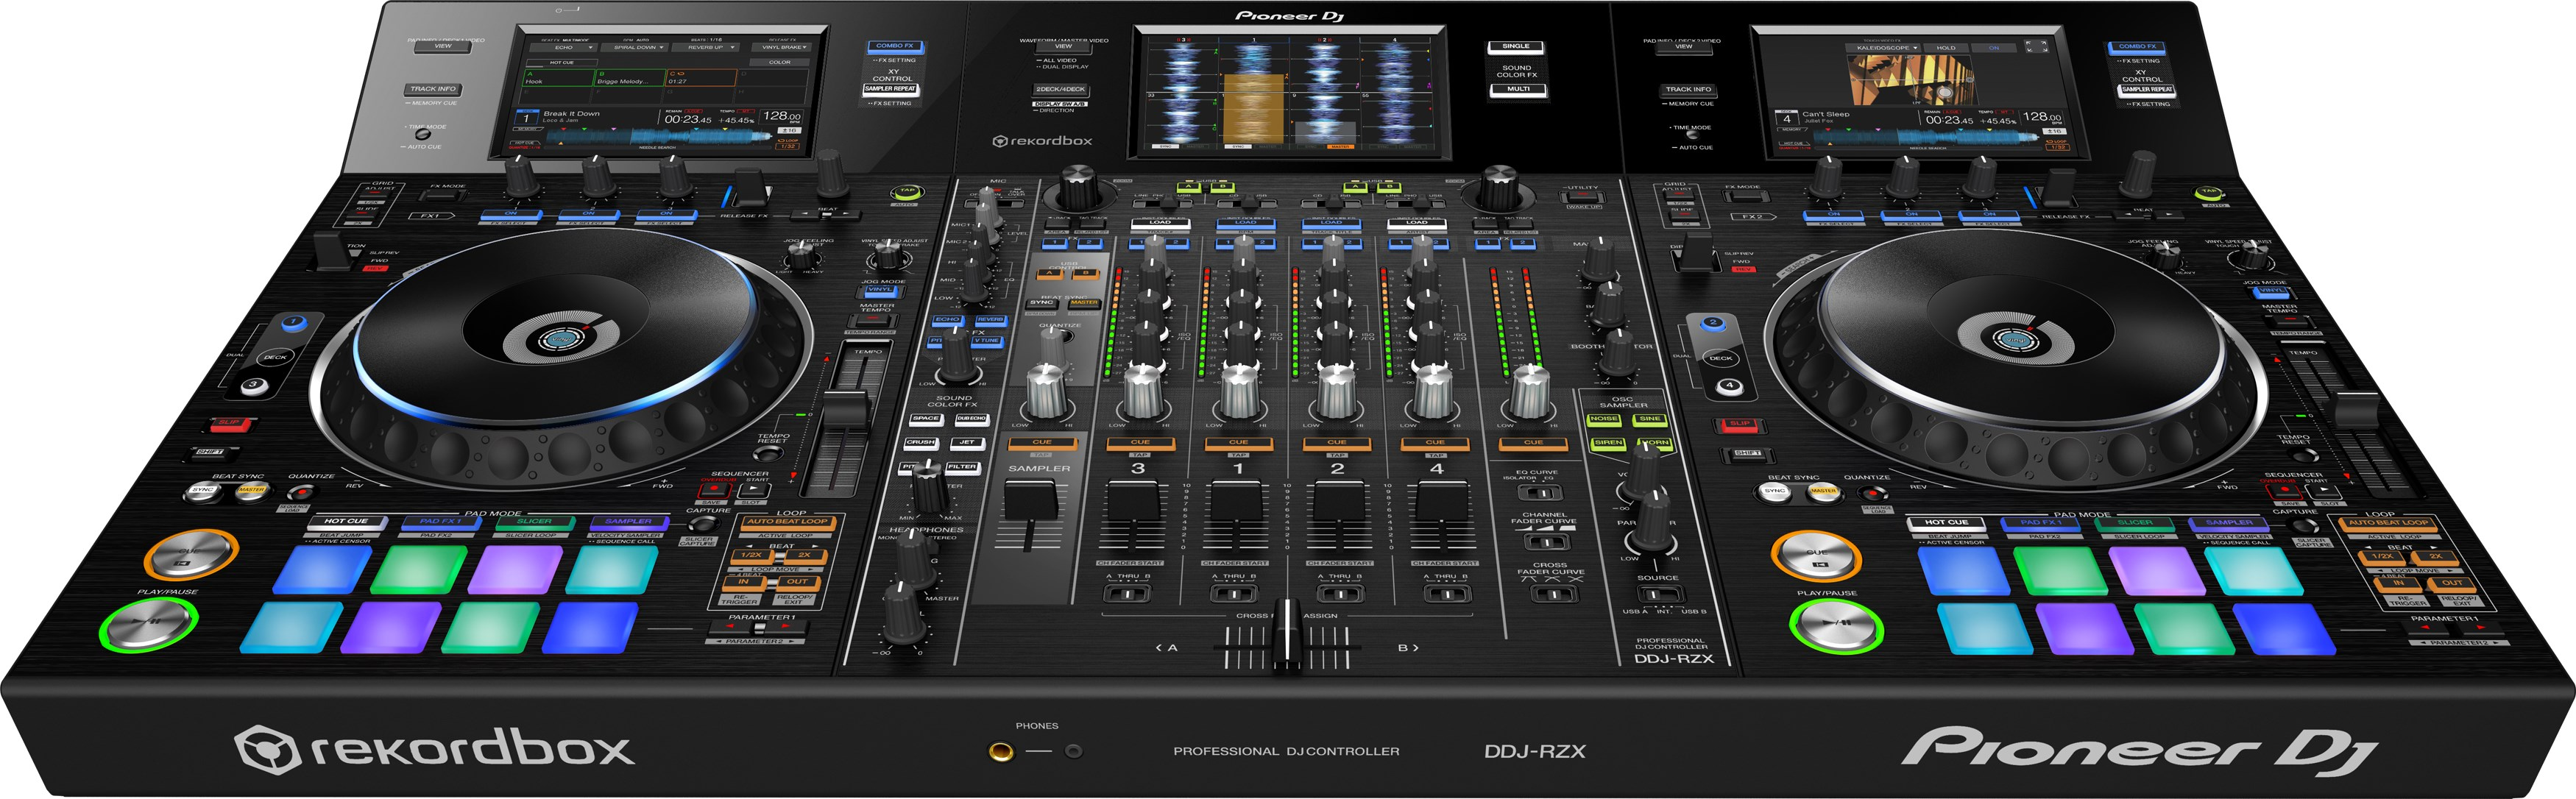 Pioneer DDJ-RZX 4 Deck Audio/Visual DJ Controller